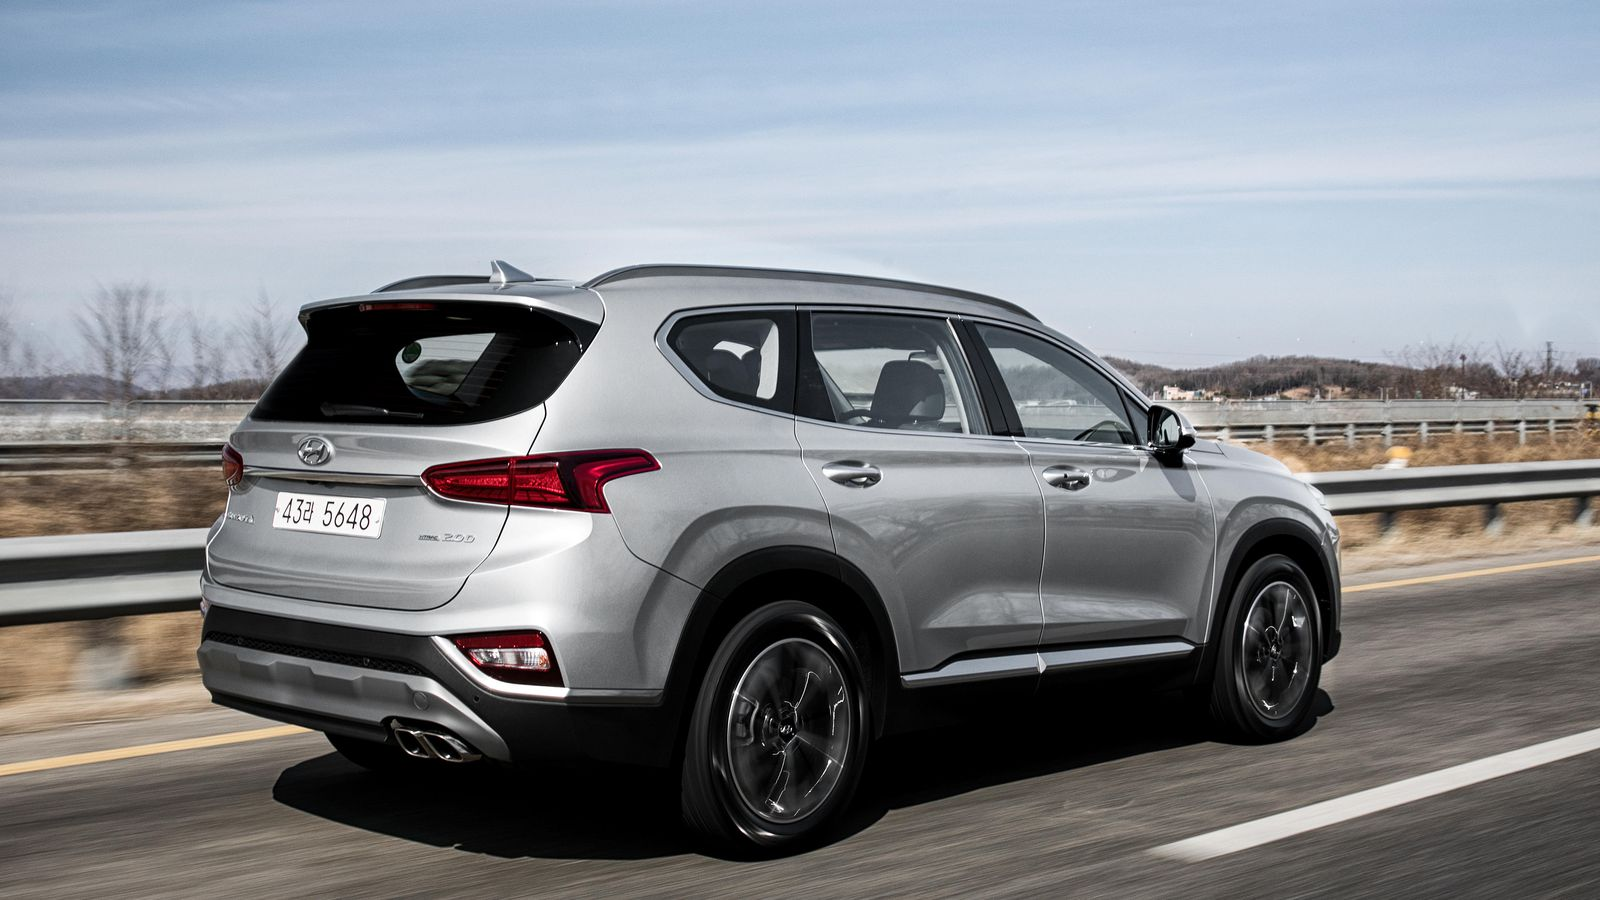 98 The Best 2020 Santa Fe Sports Configurations